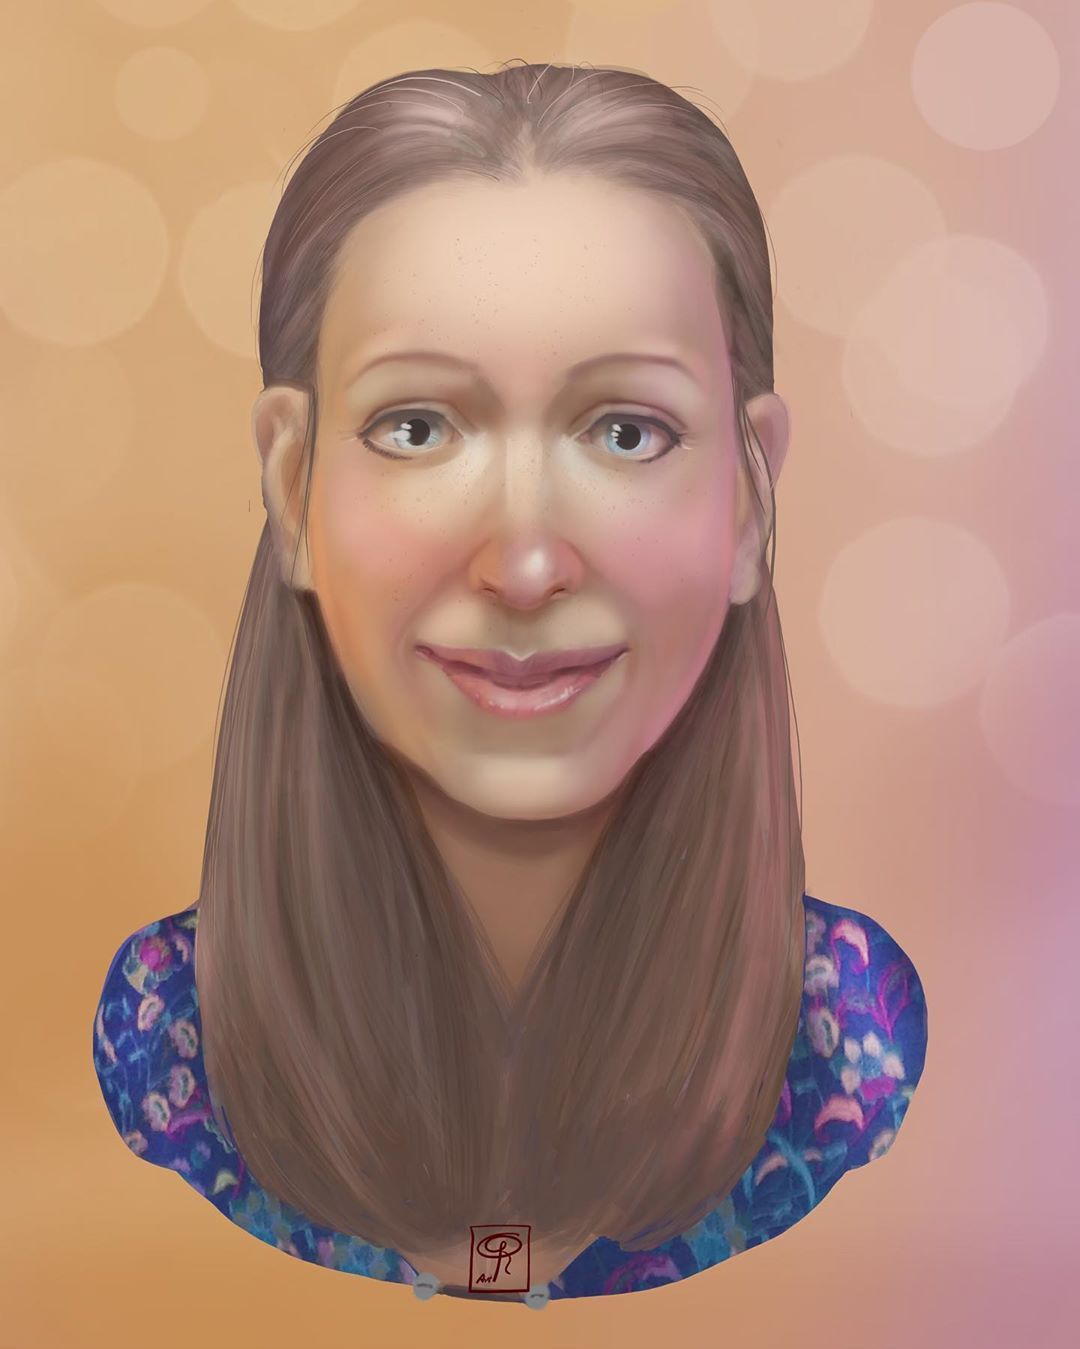 [New] The 10 Best Art (with Pictures) -  Not all heroes wear a cape. But she is mine. Portrait of my wife Stefanie. #portait #art #instaart #instaartist #digitalart #xppentablet #photoshop #womanart #faces